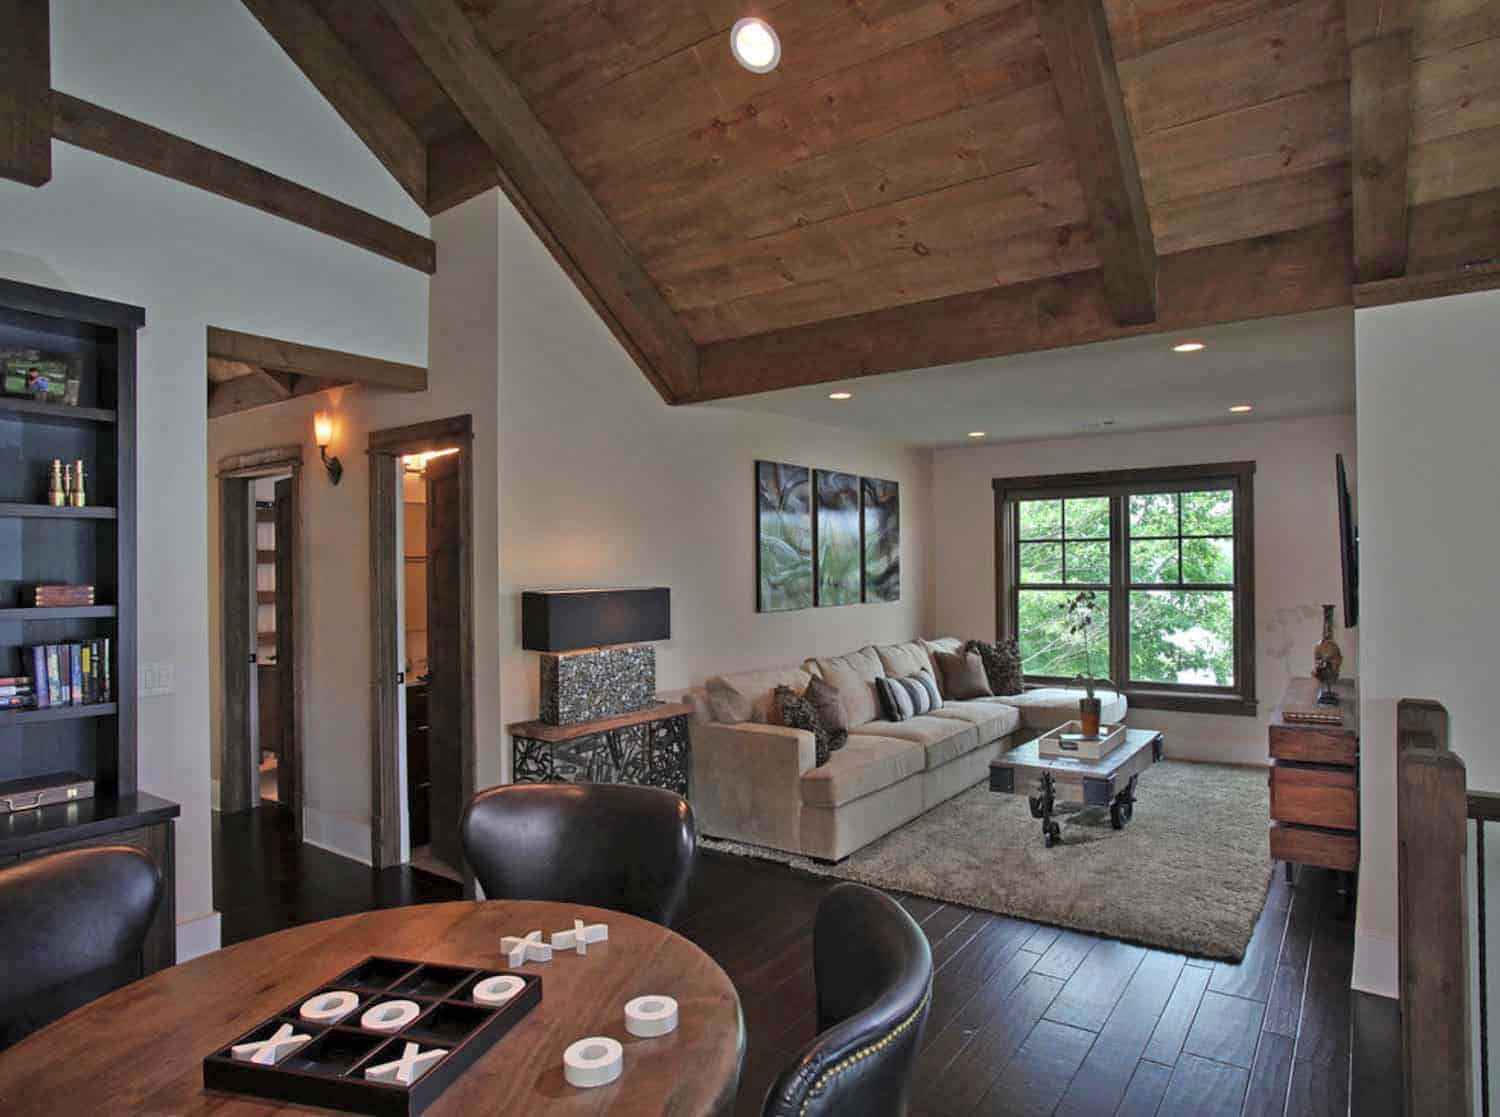 Lake Bluff Lodge-Modern Rustic Homes-07-1 Kindesign